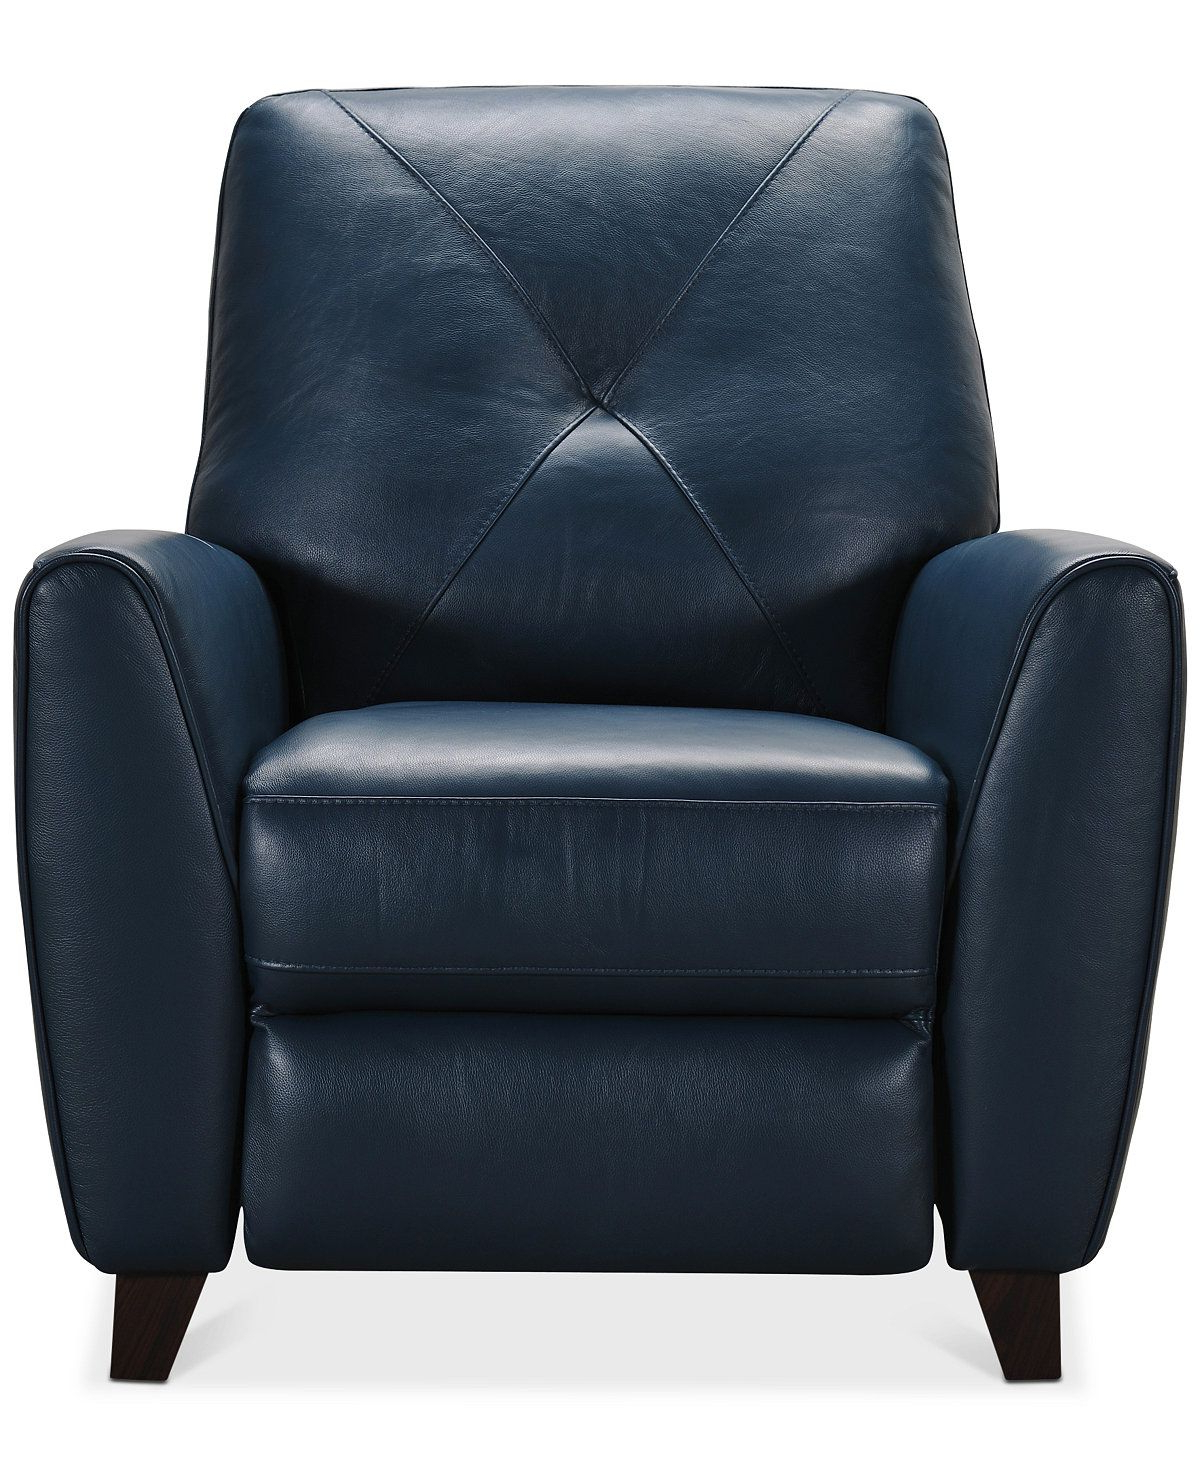 Well Known Furniture Myia Leather Pushback Recliner, Created For Macy's Regarding Myia Armchairs (View 14 of 20)